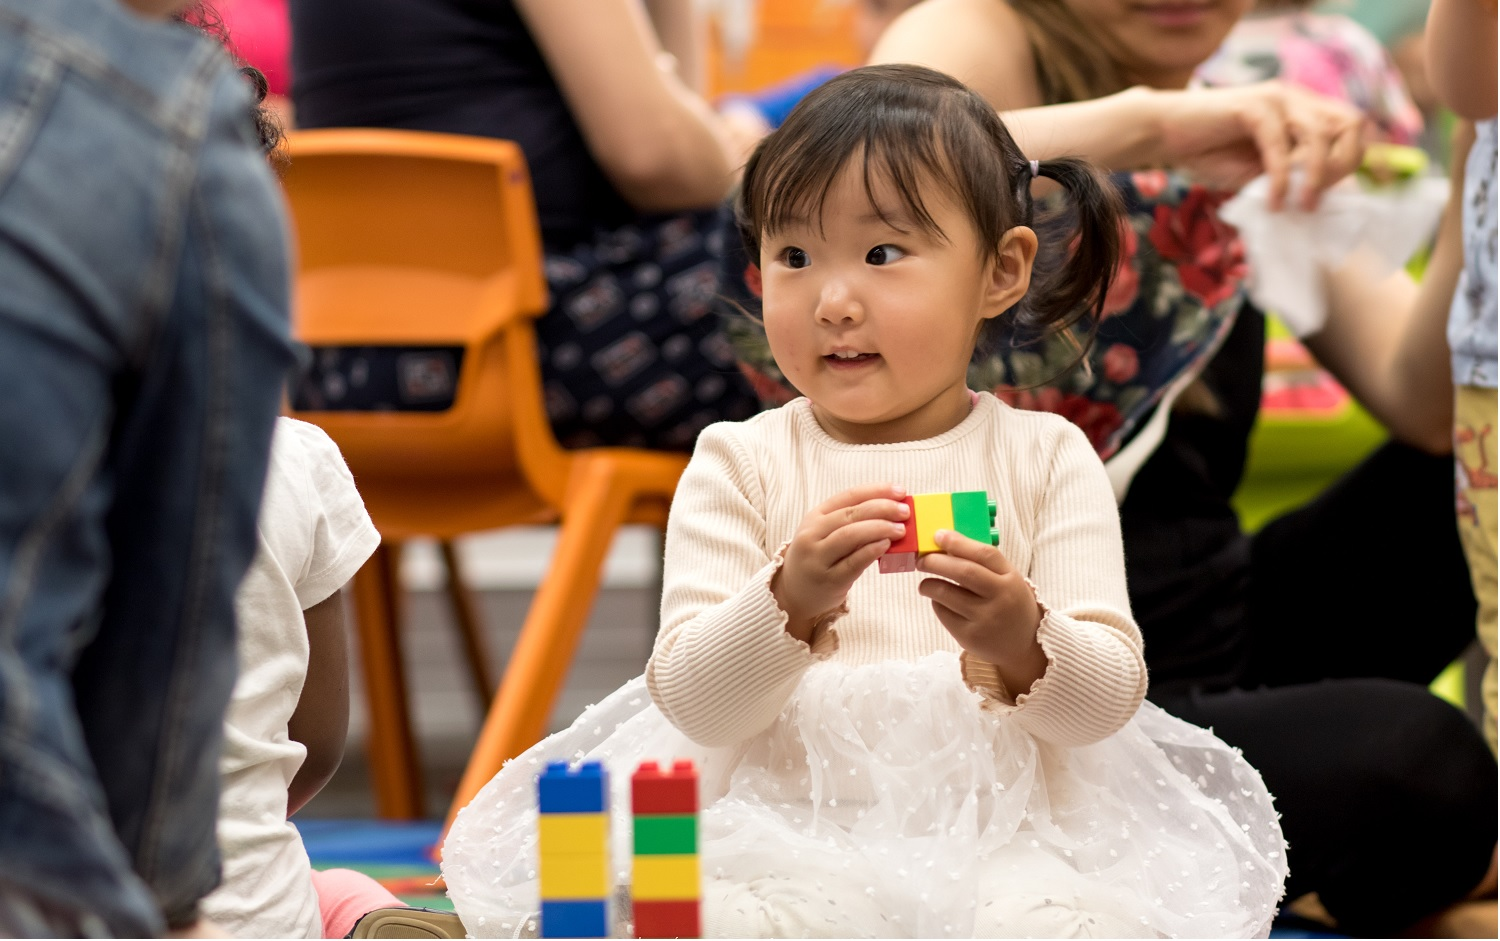 Little girl in white tutu dress plays with duplo, building towers.